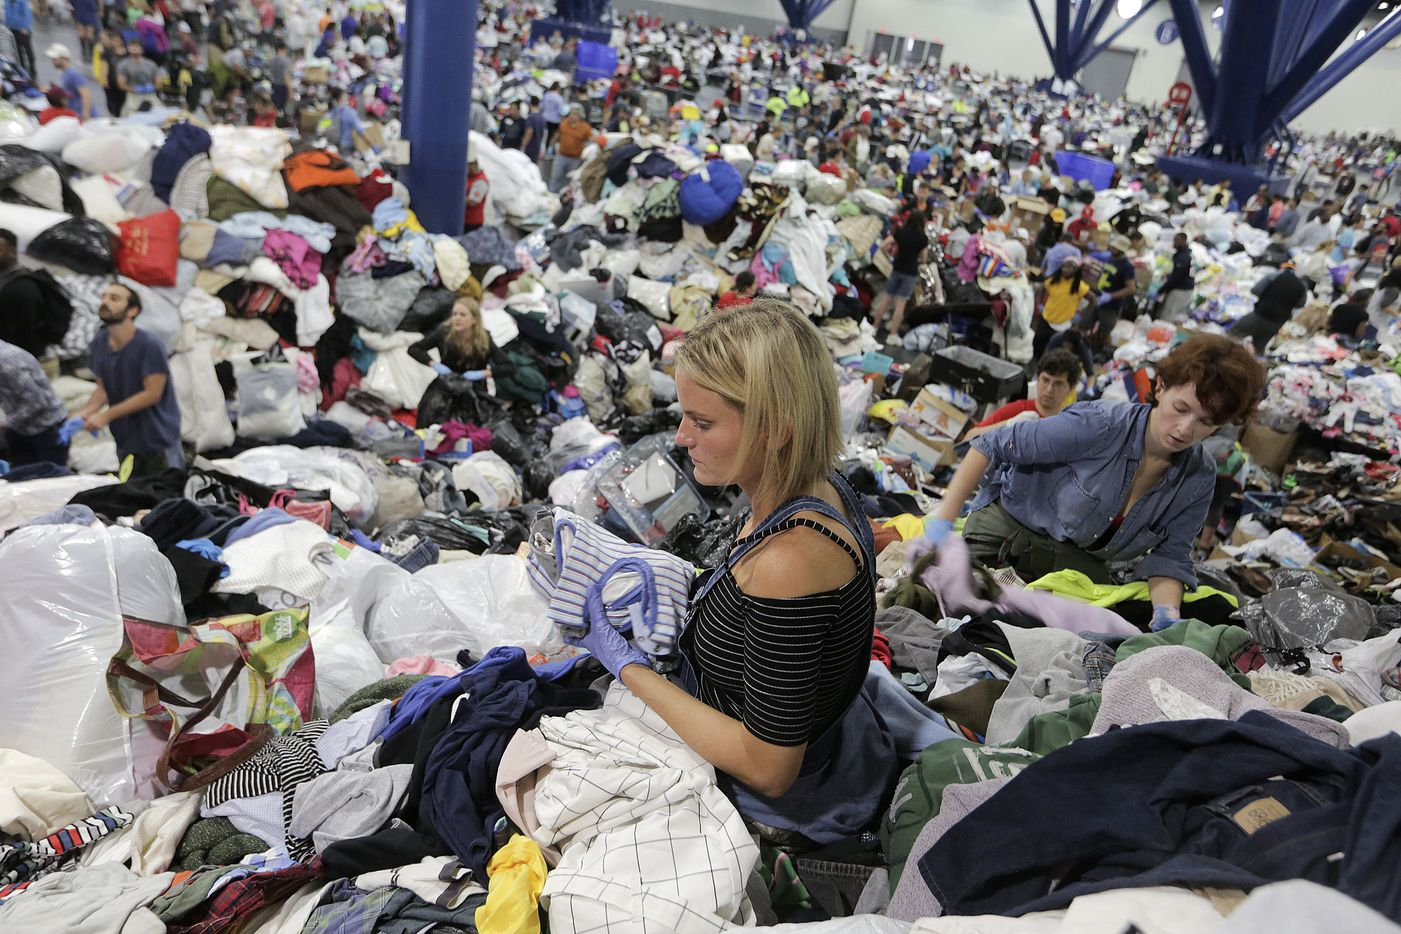 Kathryn Loder sorts donated clothing at George R. Brown Convention Center in Houston as Tropical Storm Harvey inches its way through the area on Tuesday, Aug. 29, 2017